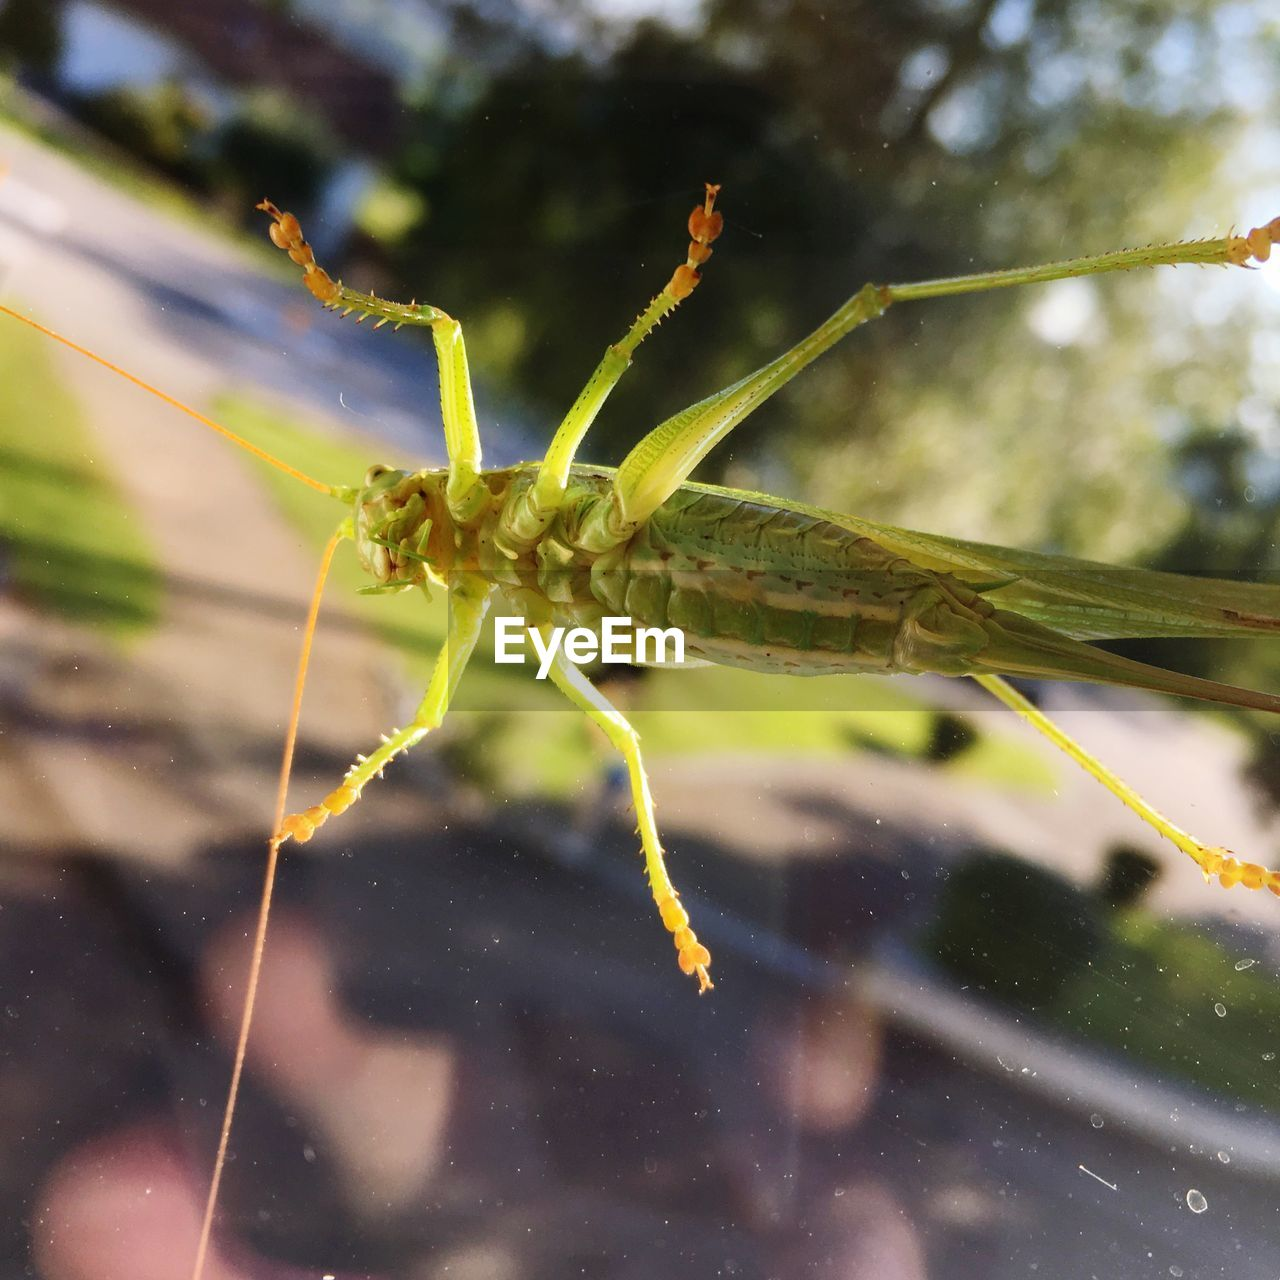 one animal, insect, animal themes, animals in the wild, no people, focus on foreground, close-up, animal wildlife, nature, day, green color, outdoors, leaf